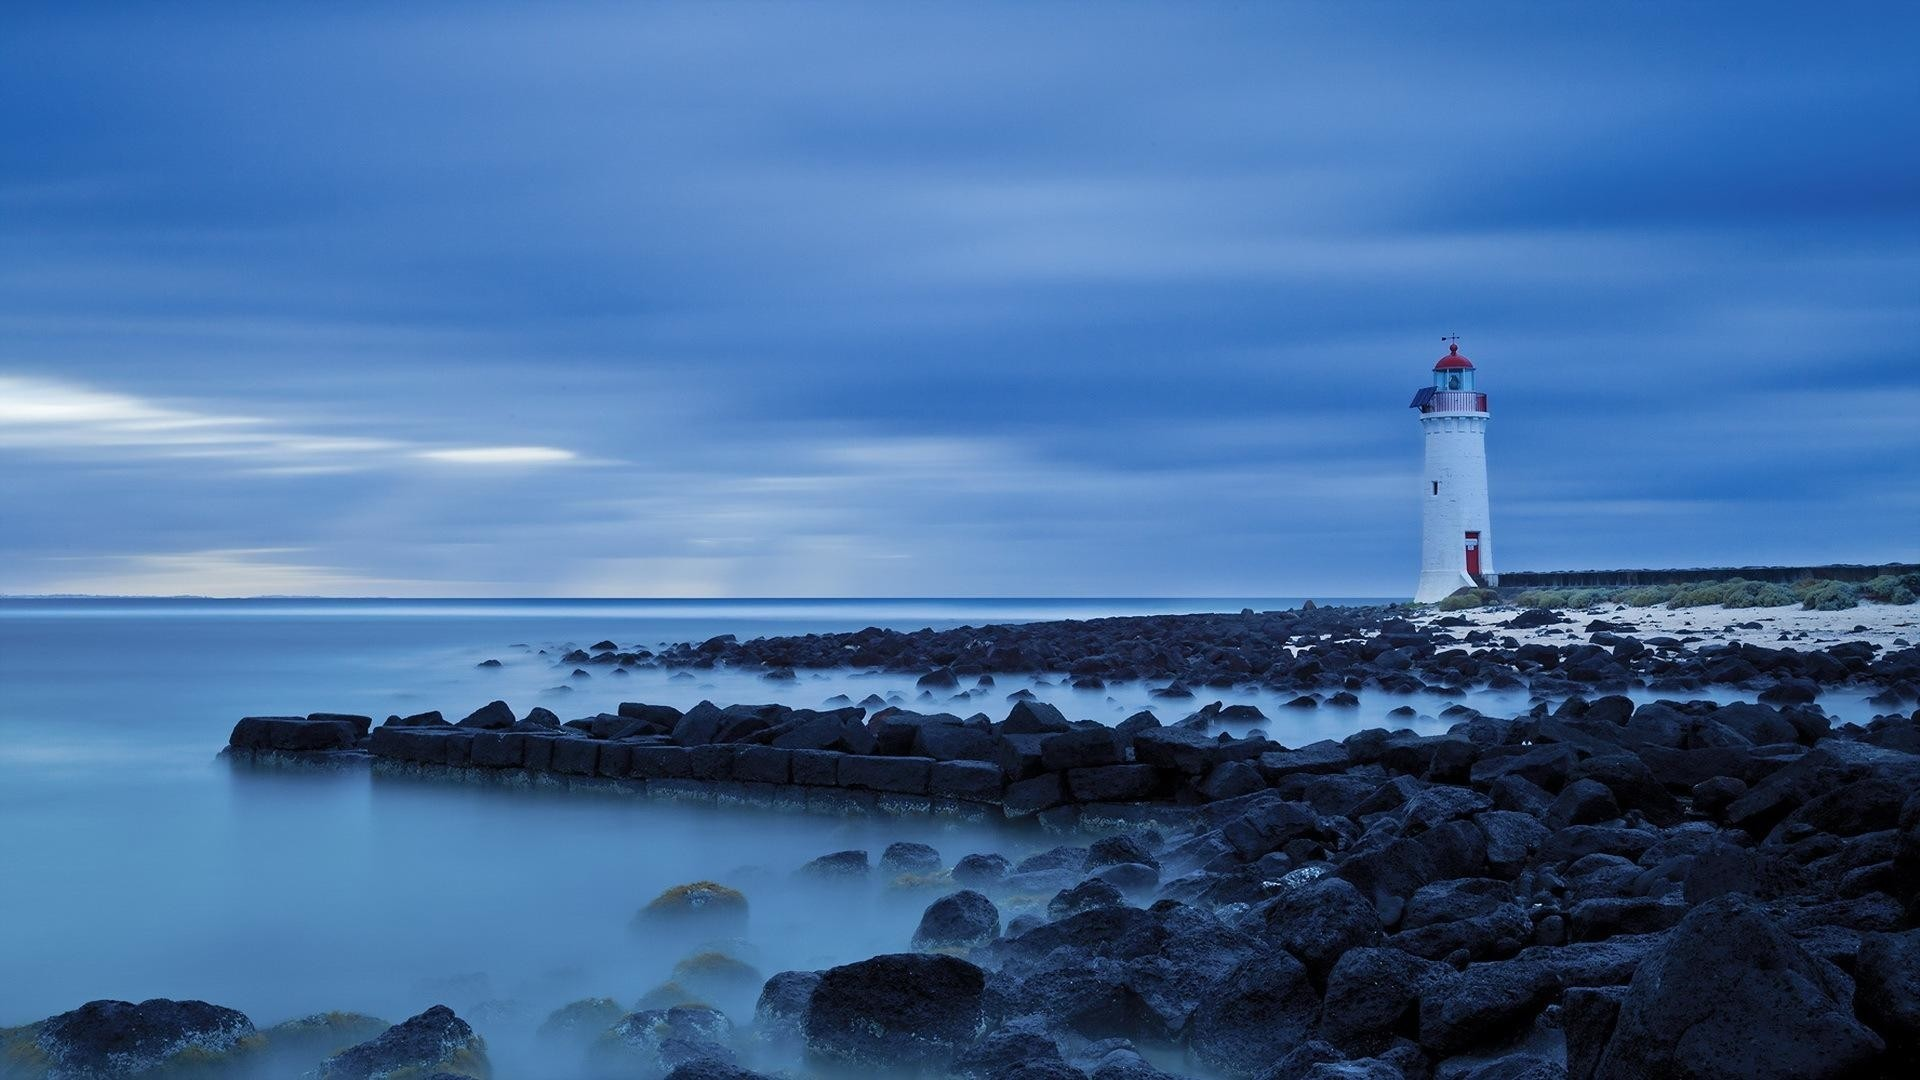 Lighthouse hd wallpaper download